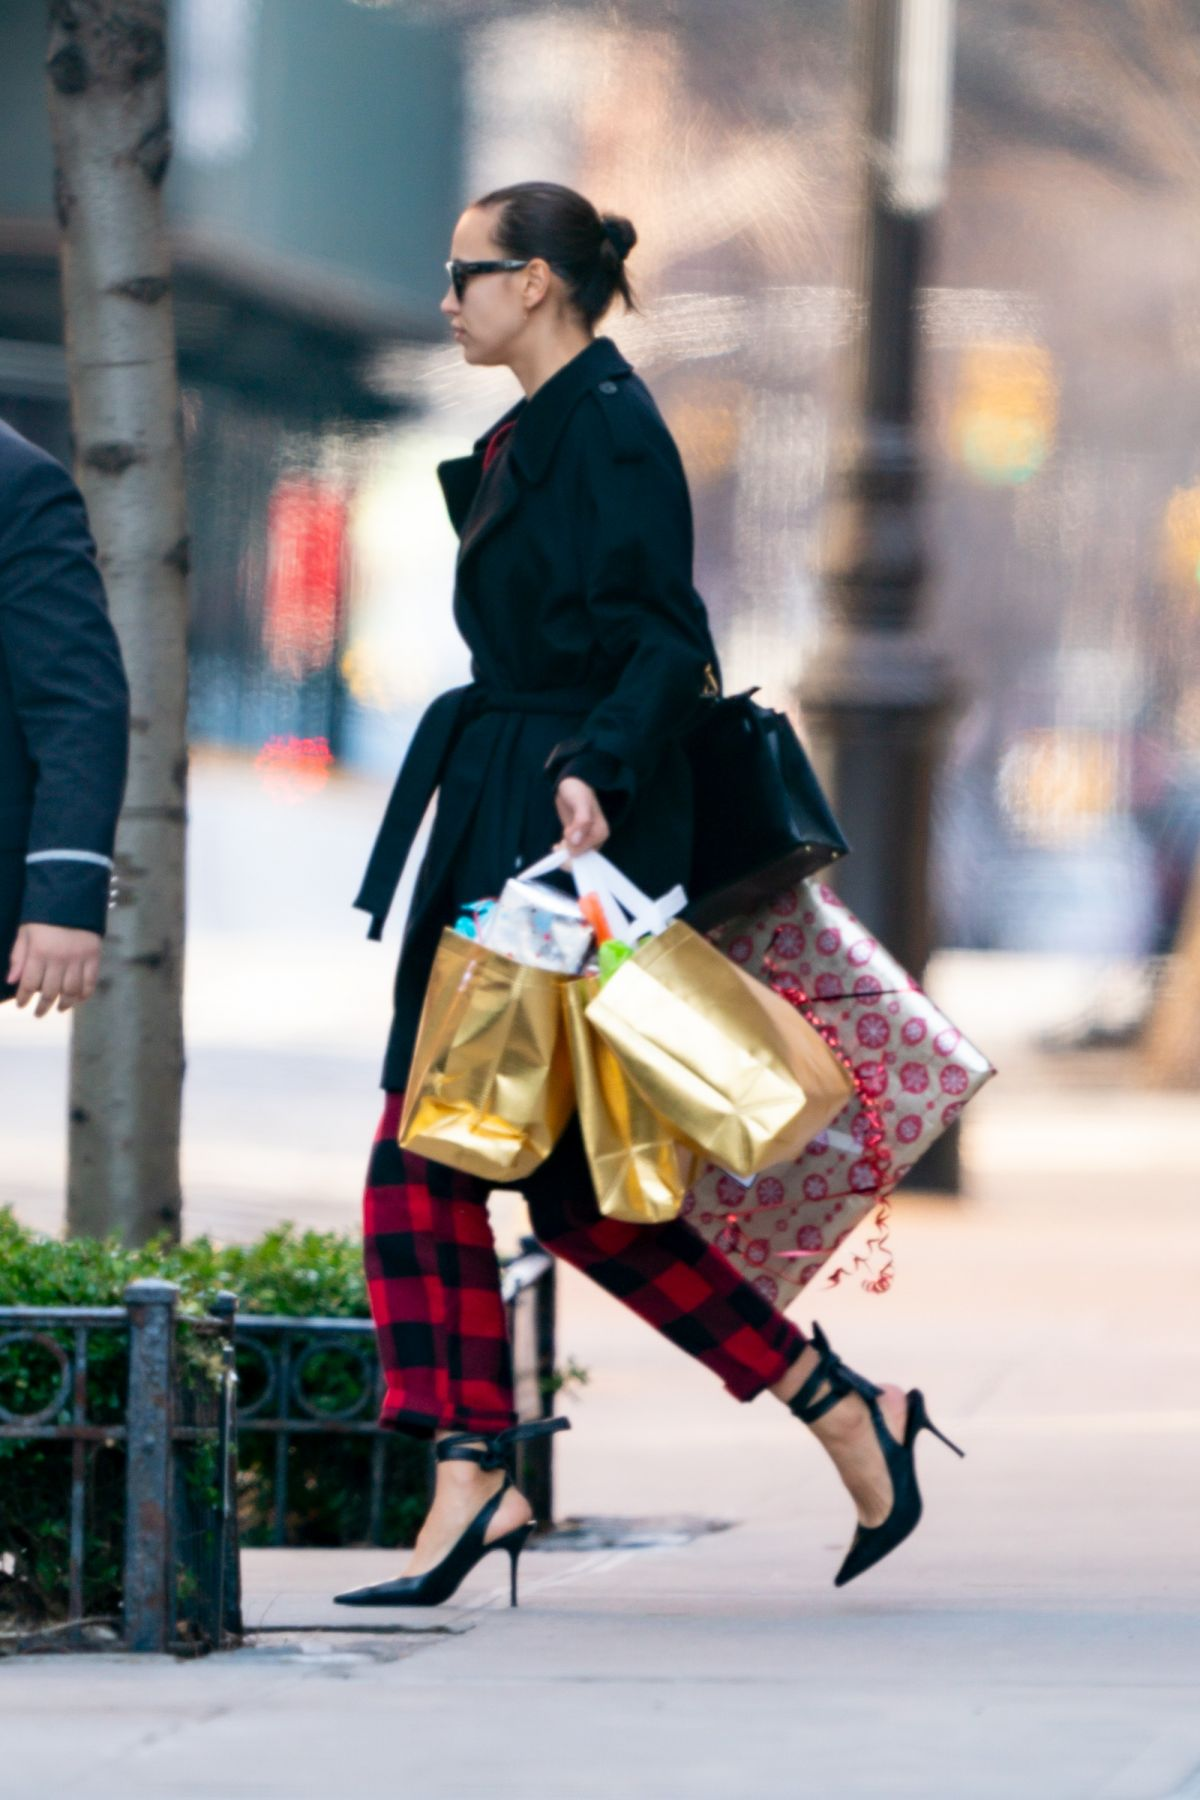 IRINA SHAYK Out on Christmas Day in New York 12/25/2019 – HawtCelebs